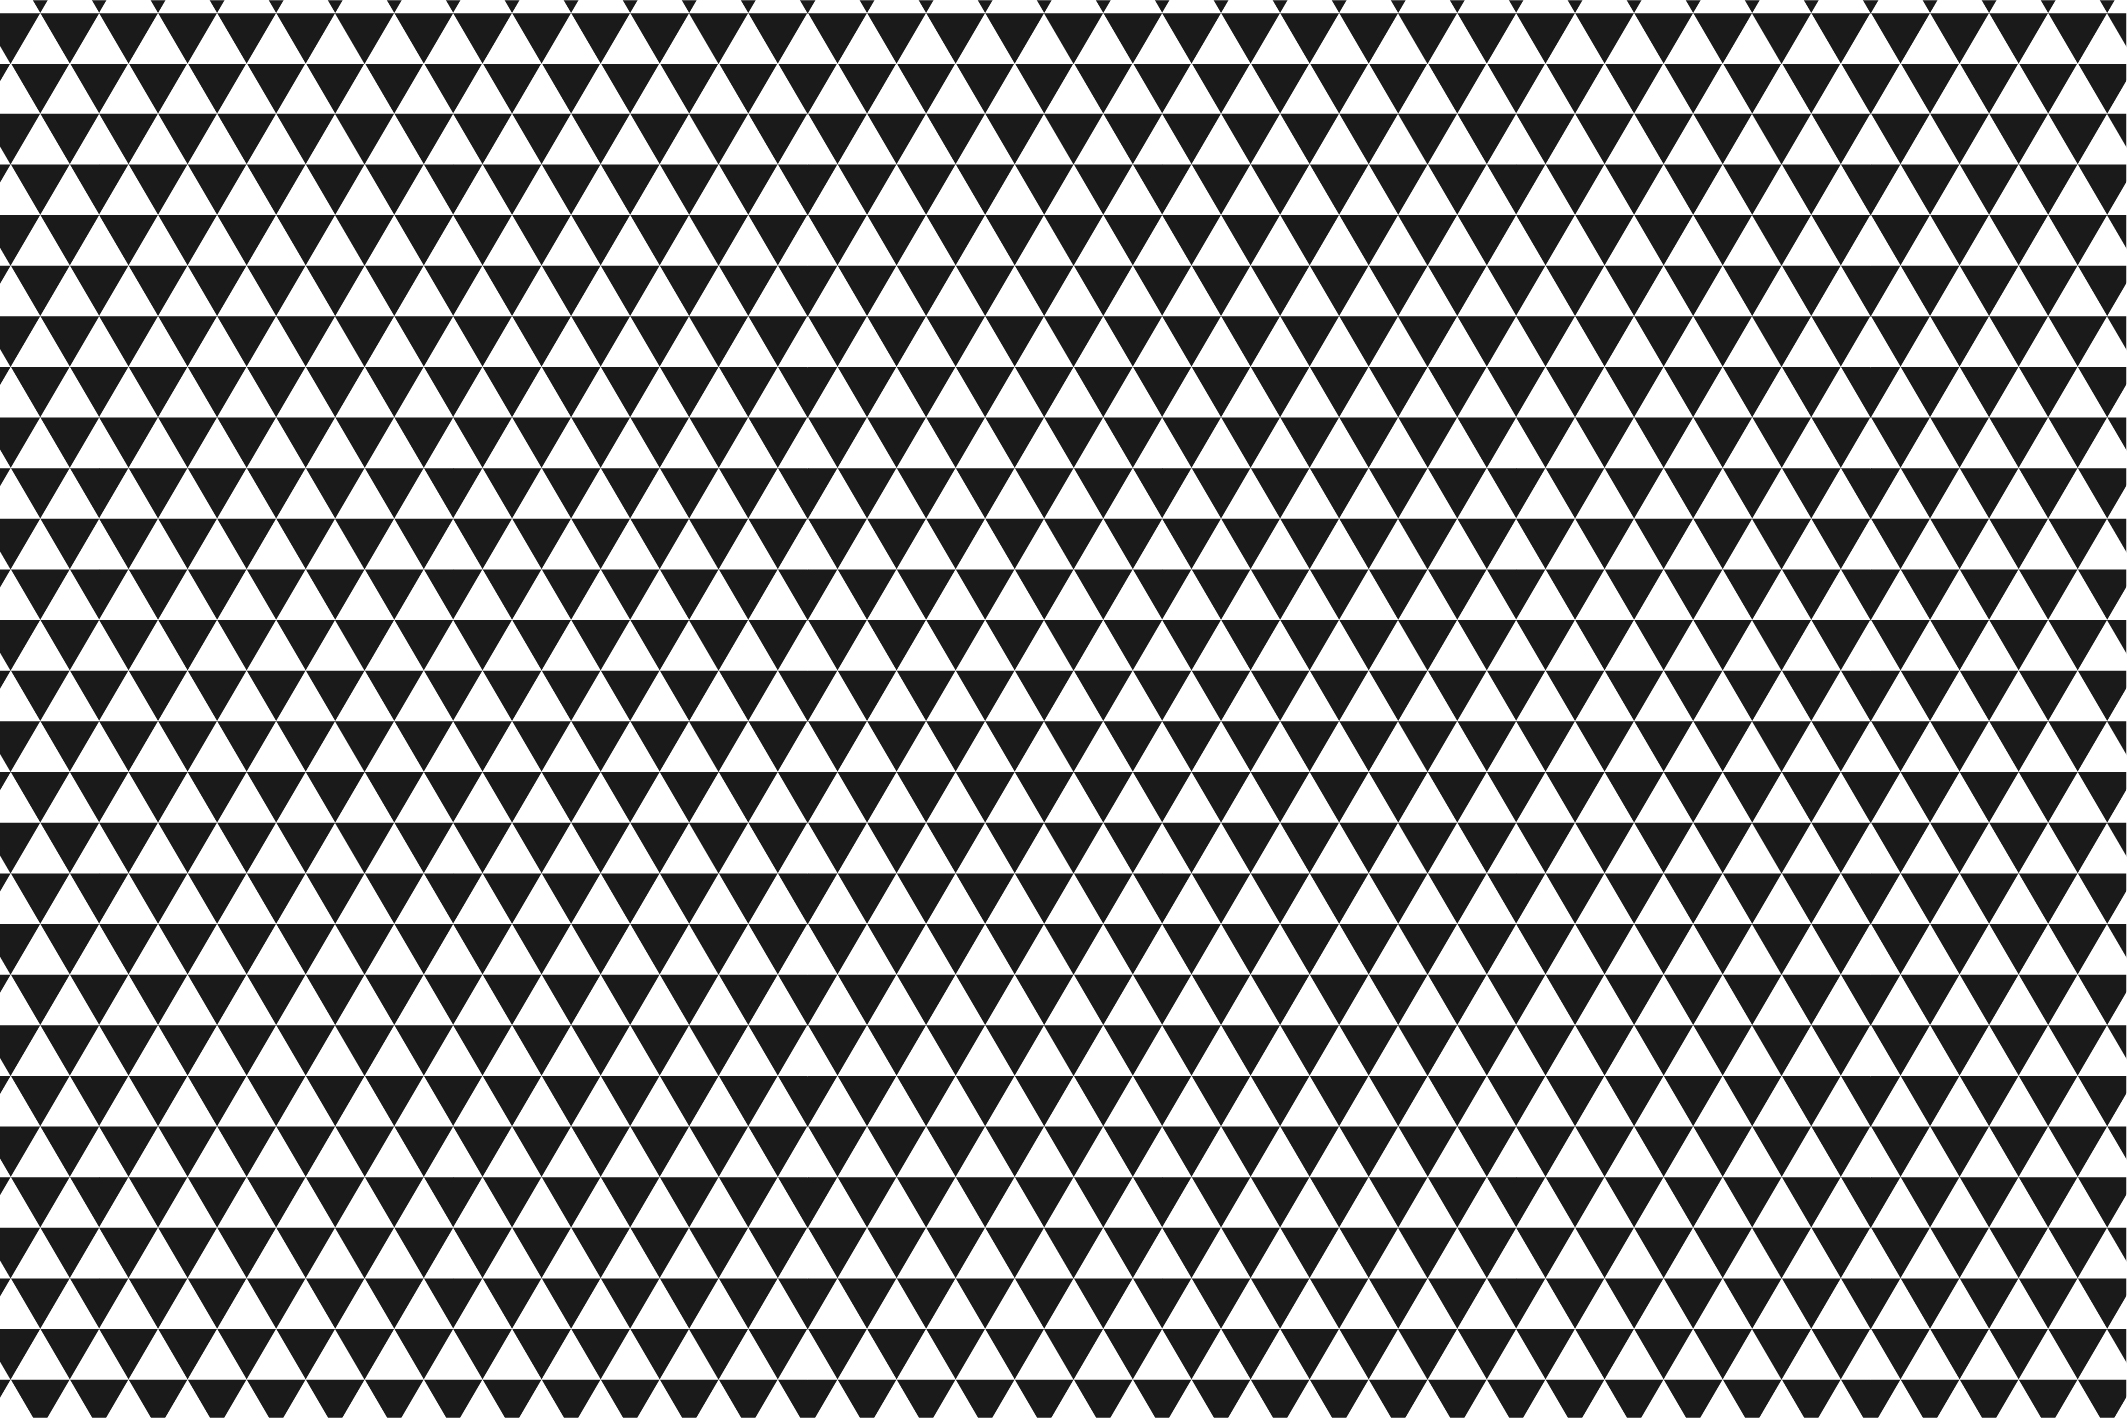 Geometric seamless patterns. B&W. example image 4